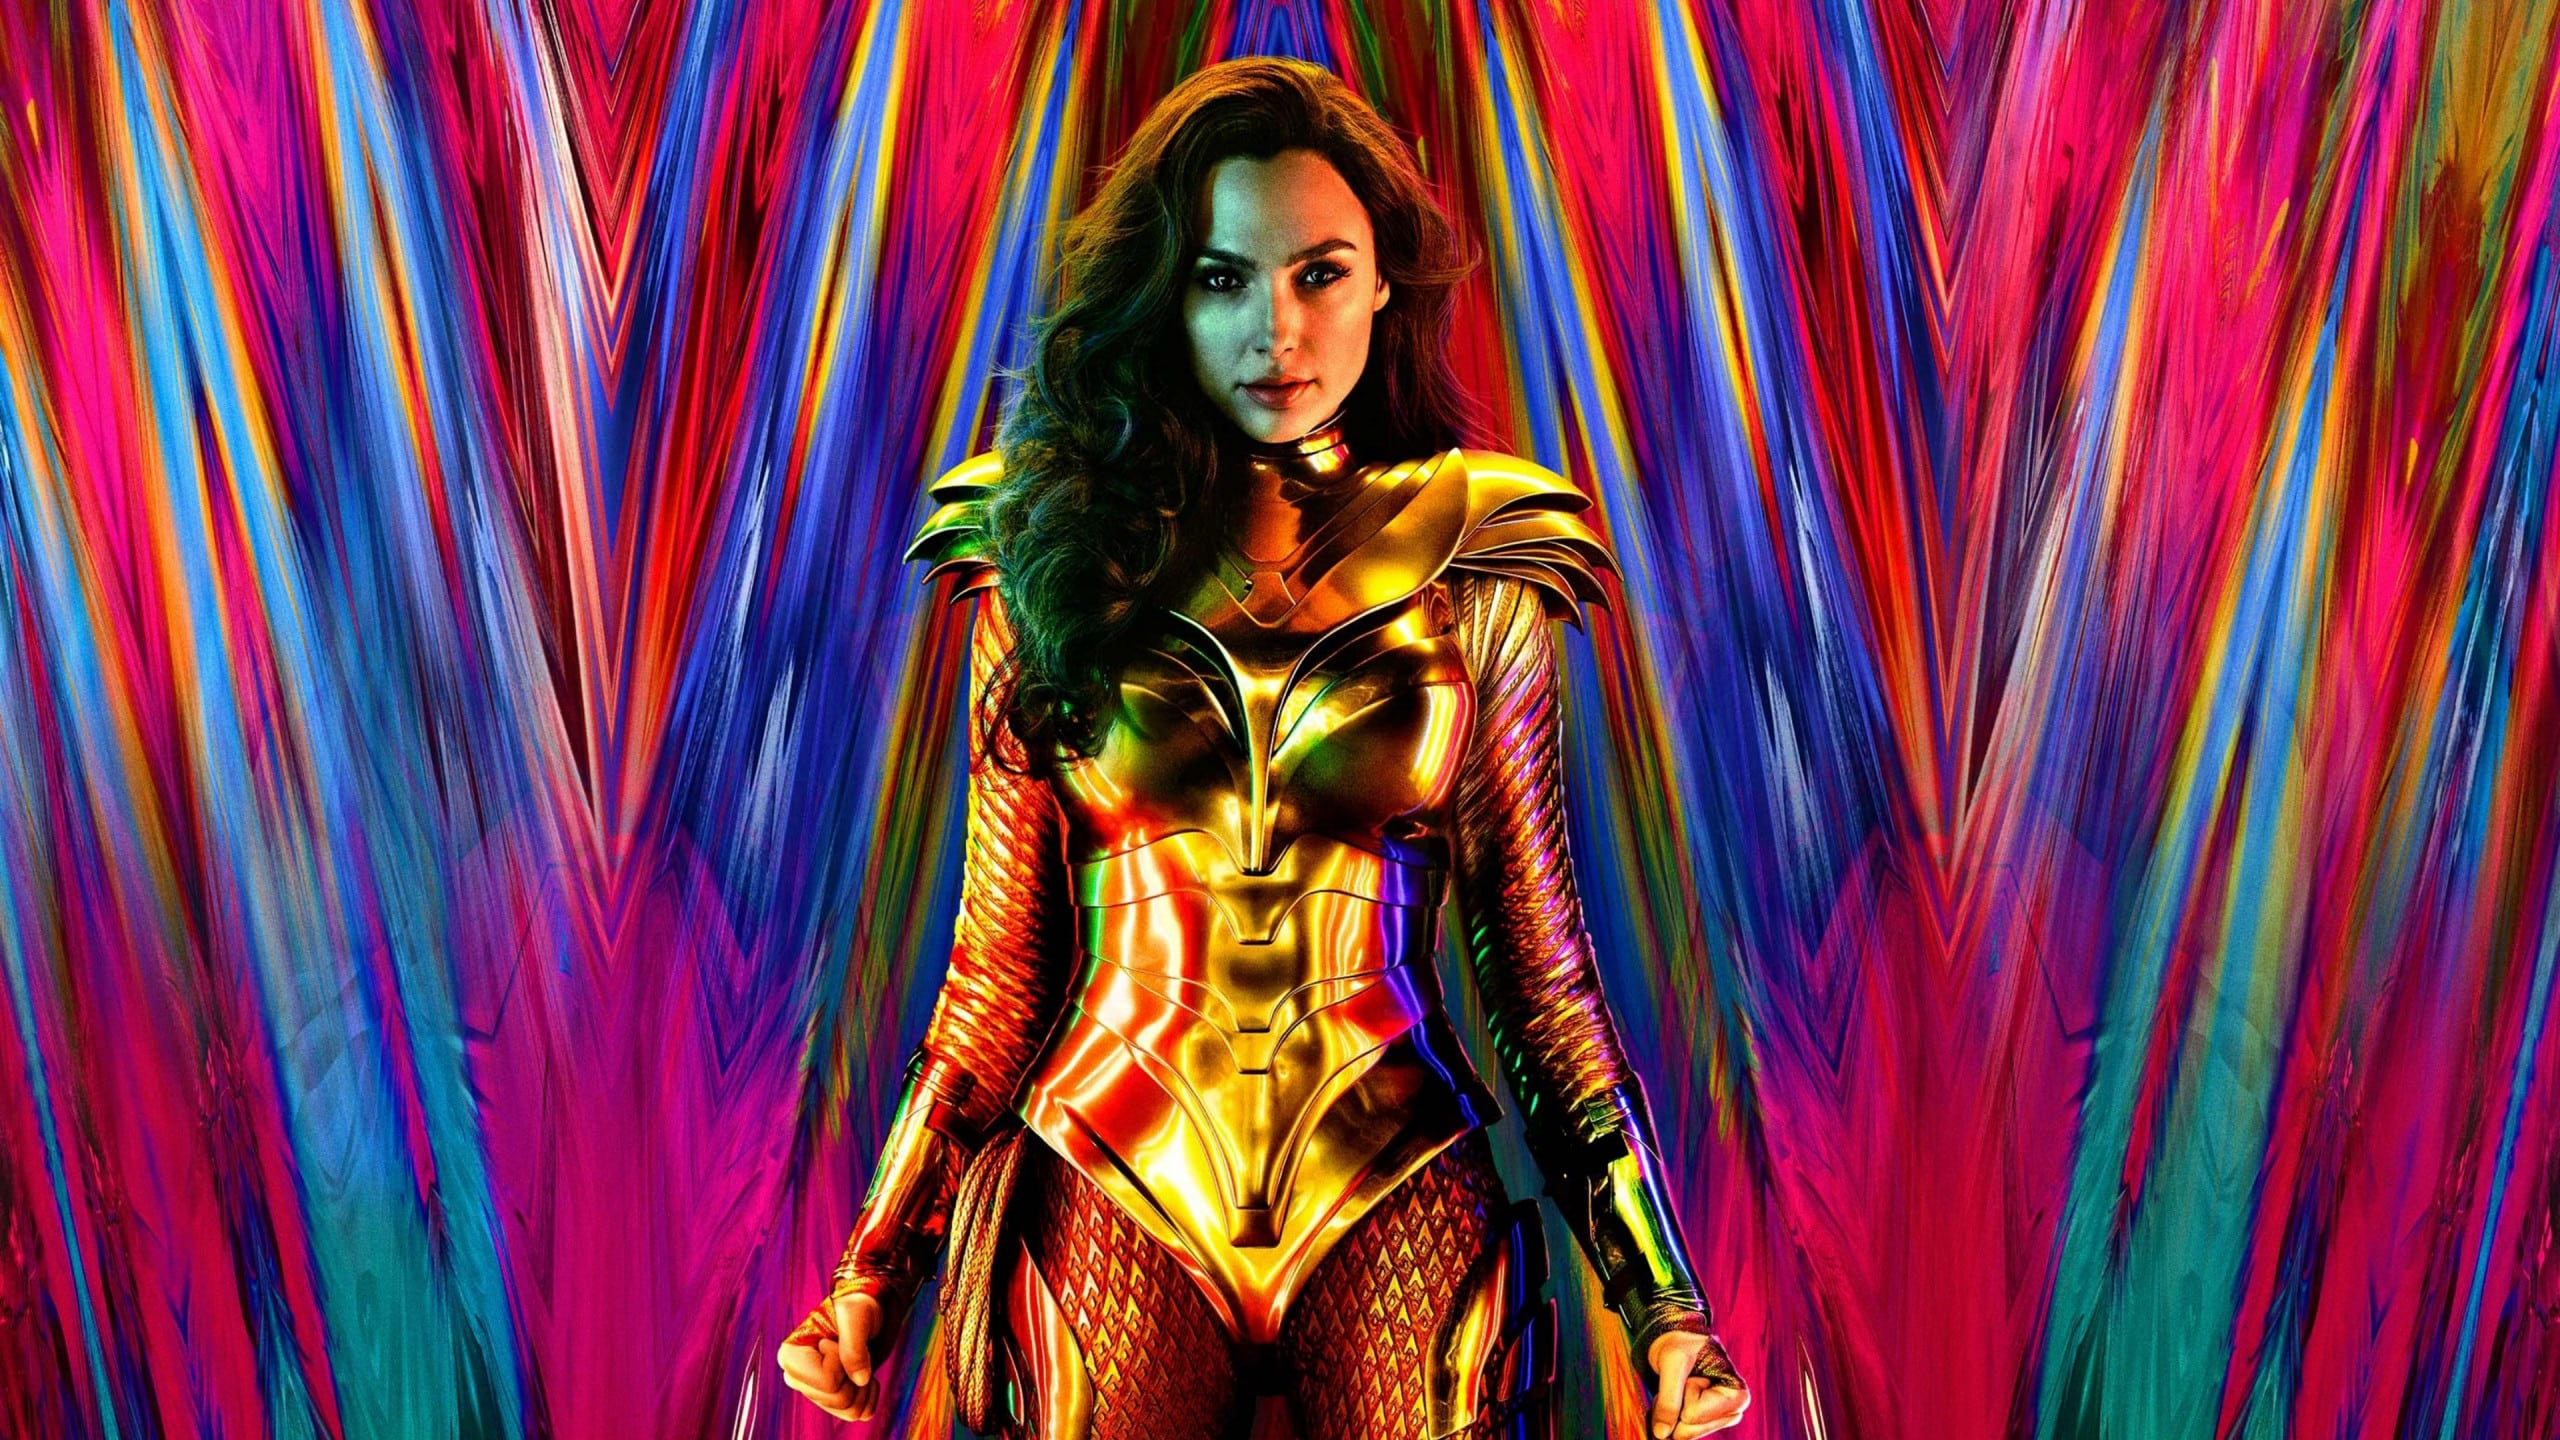 wonder woman 1984 film